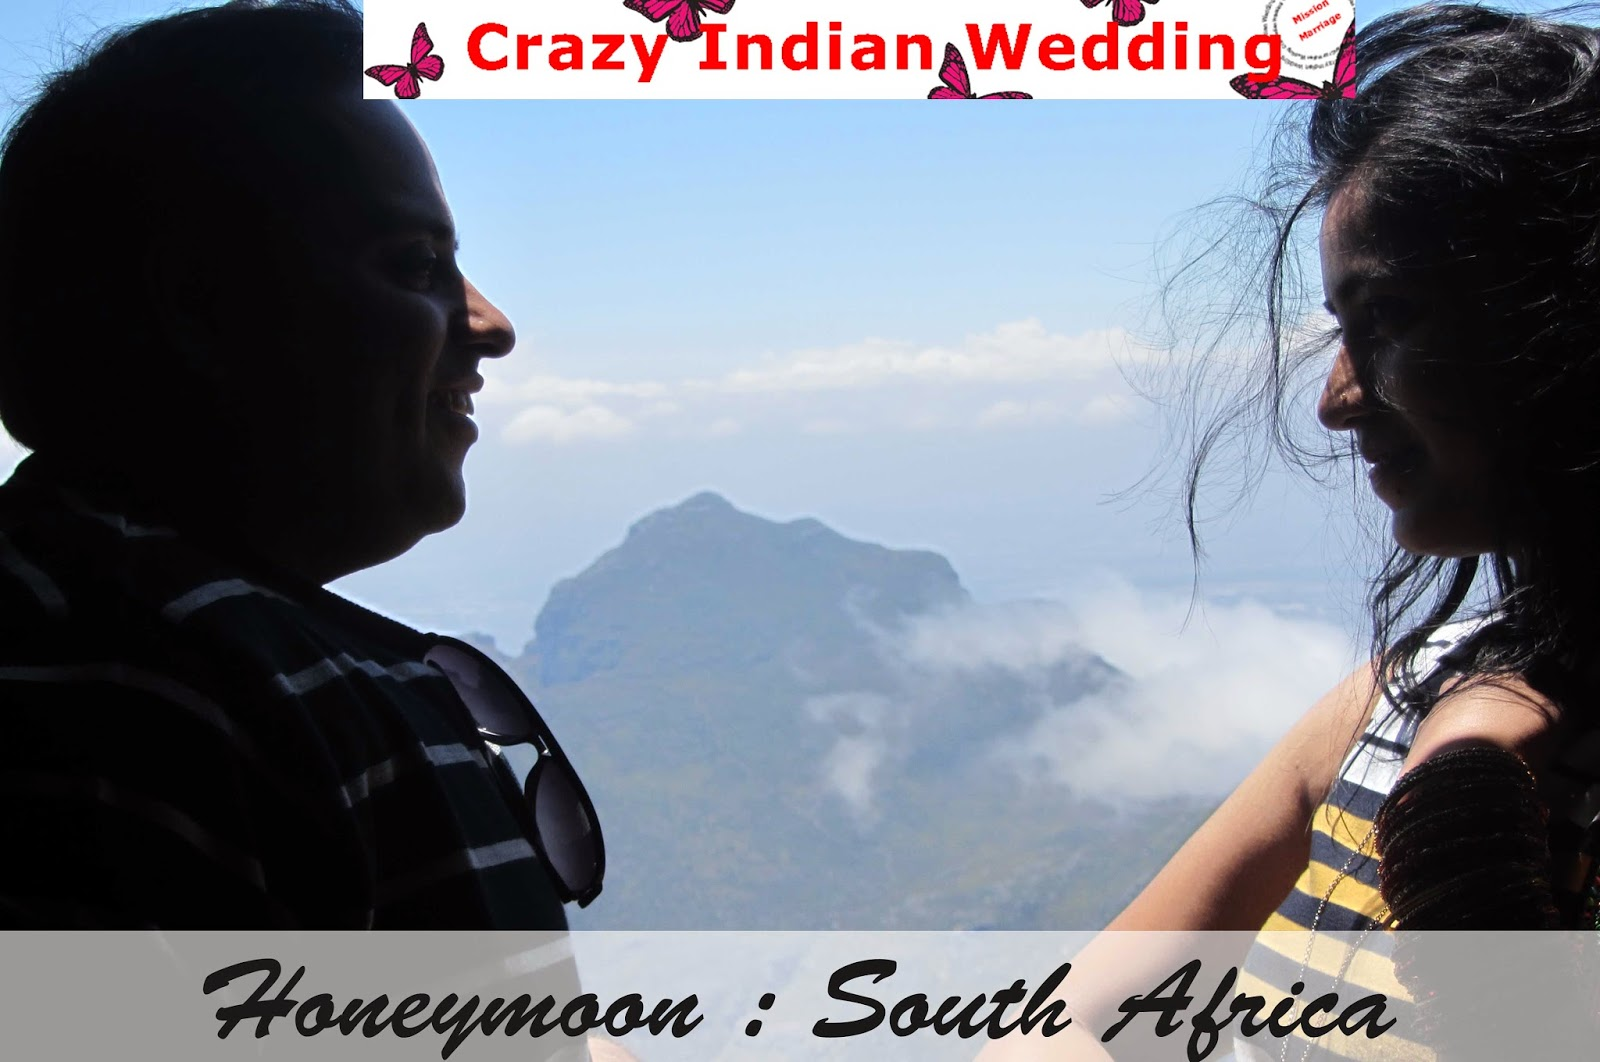 South Africa indian wedding